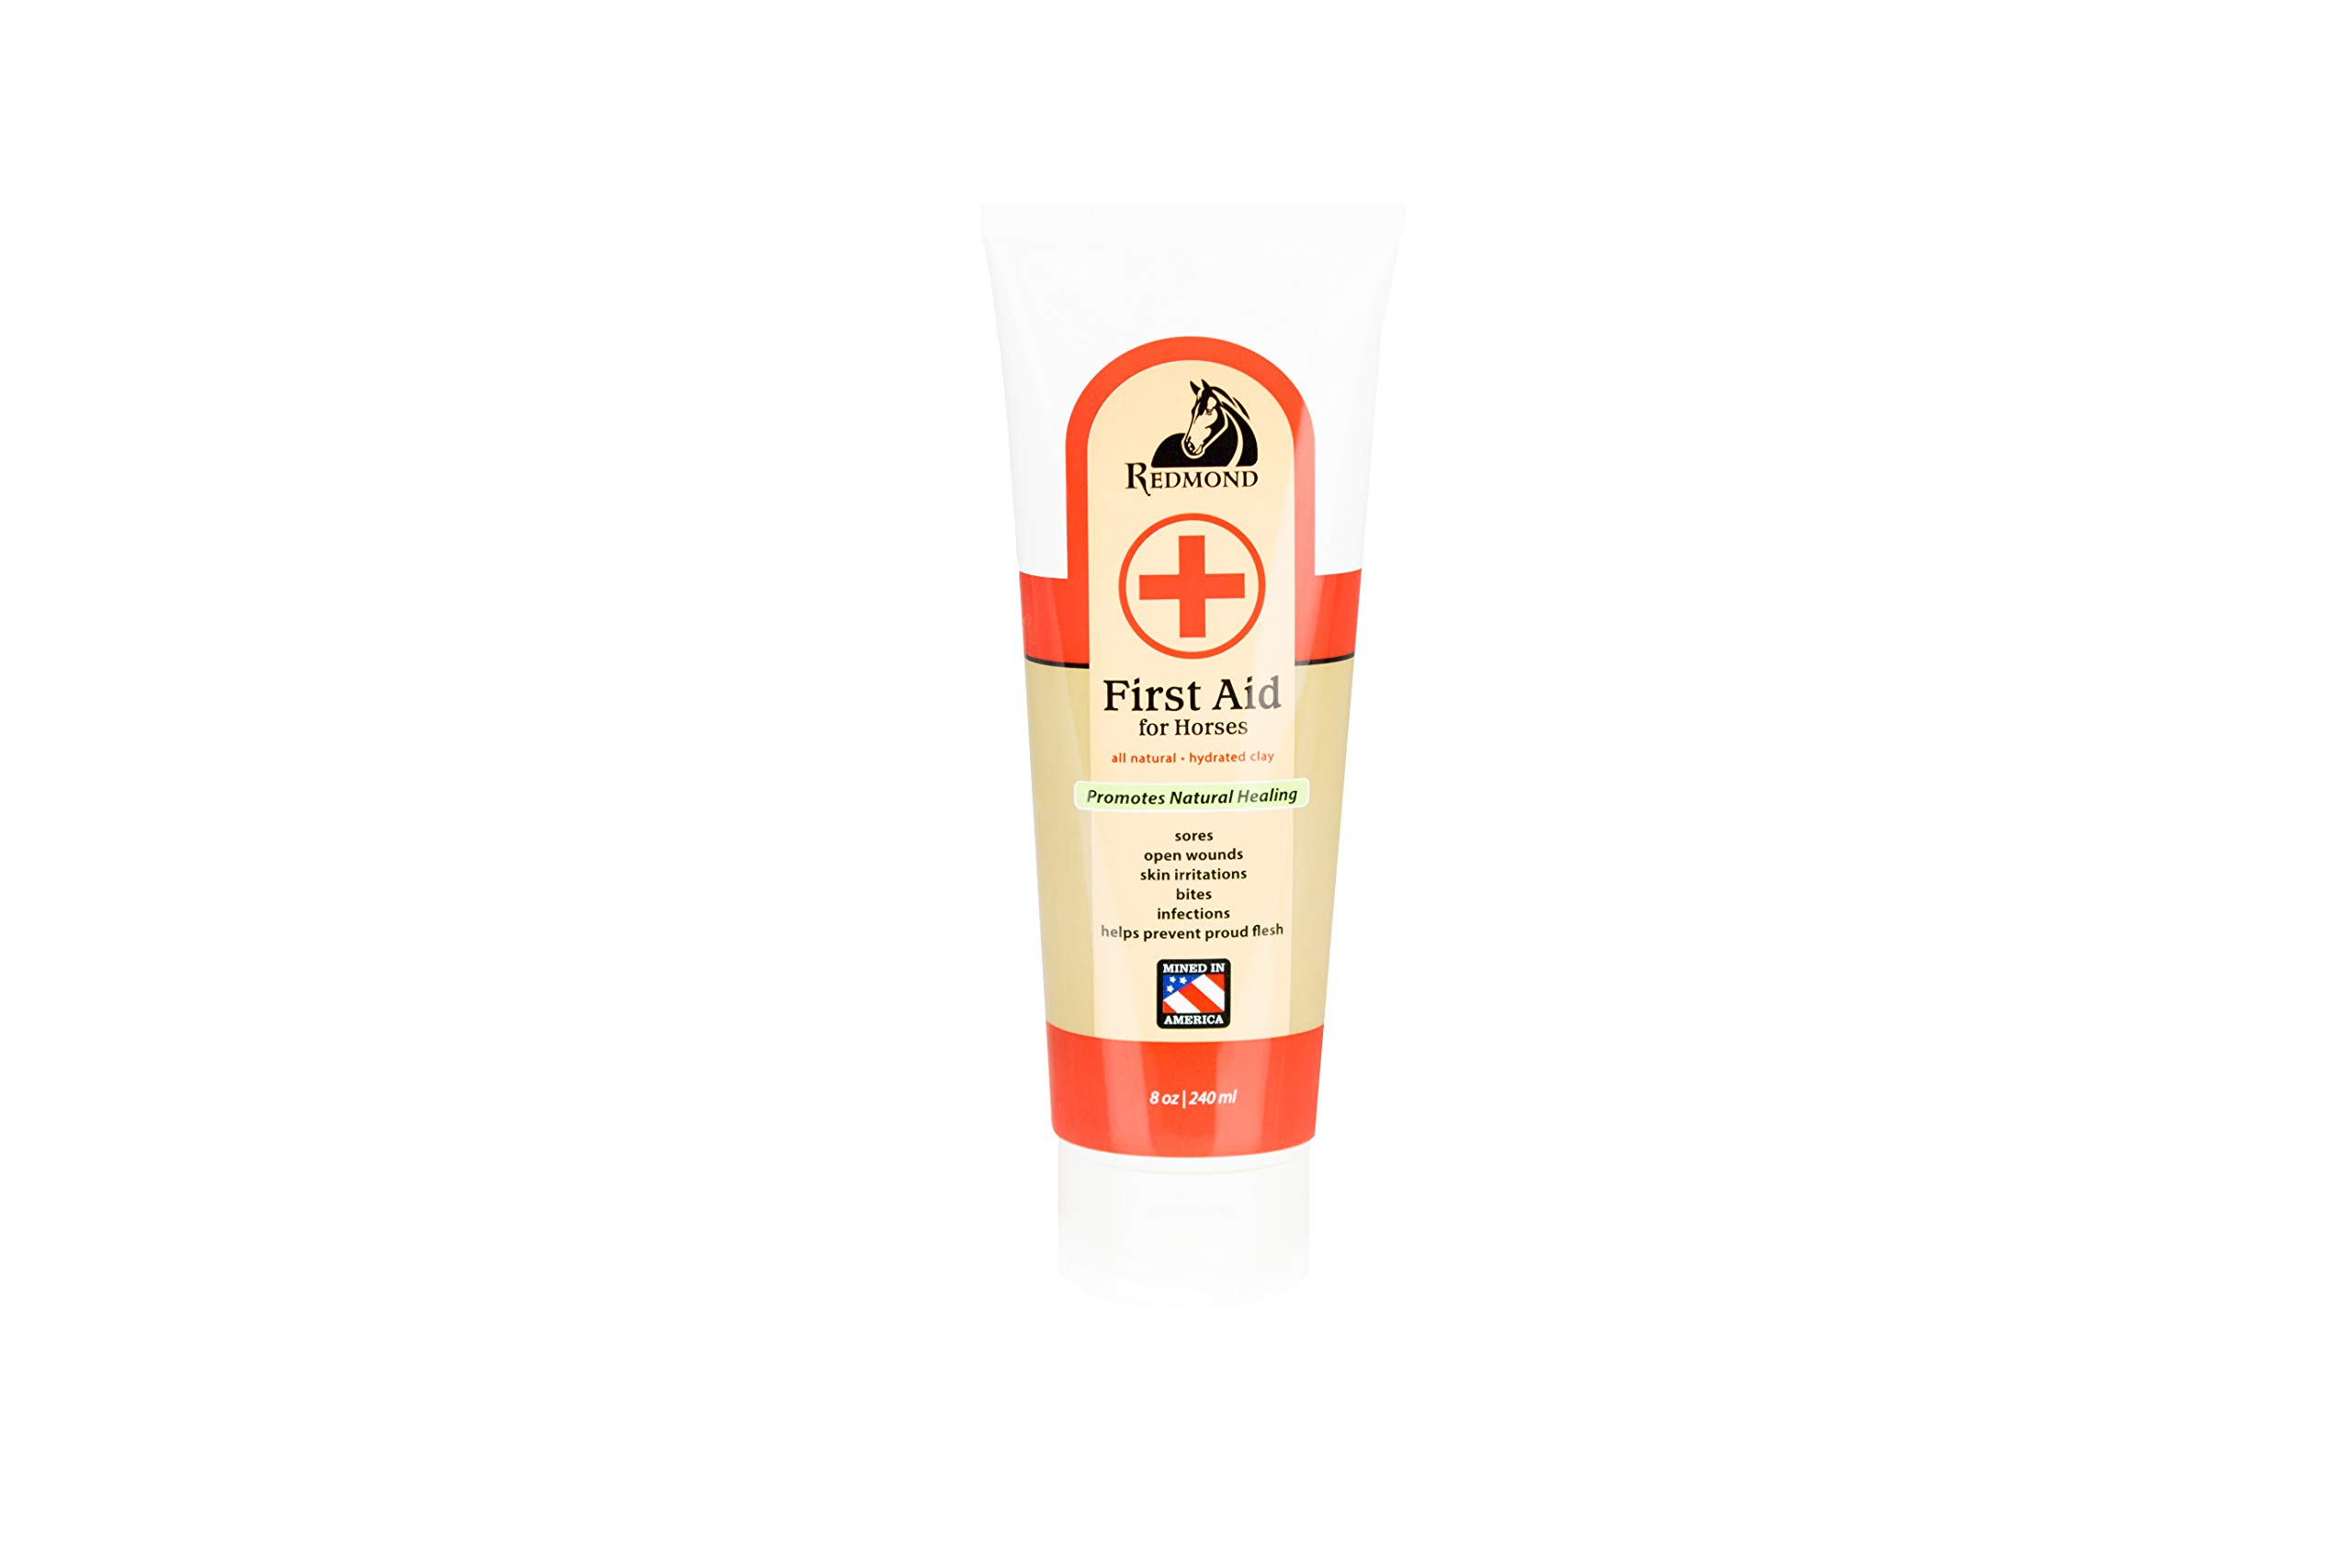 REDMOND First Aid All Natural Hydrated Clay for Horses, 8 Ounce Tube